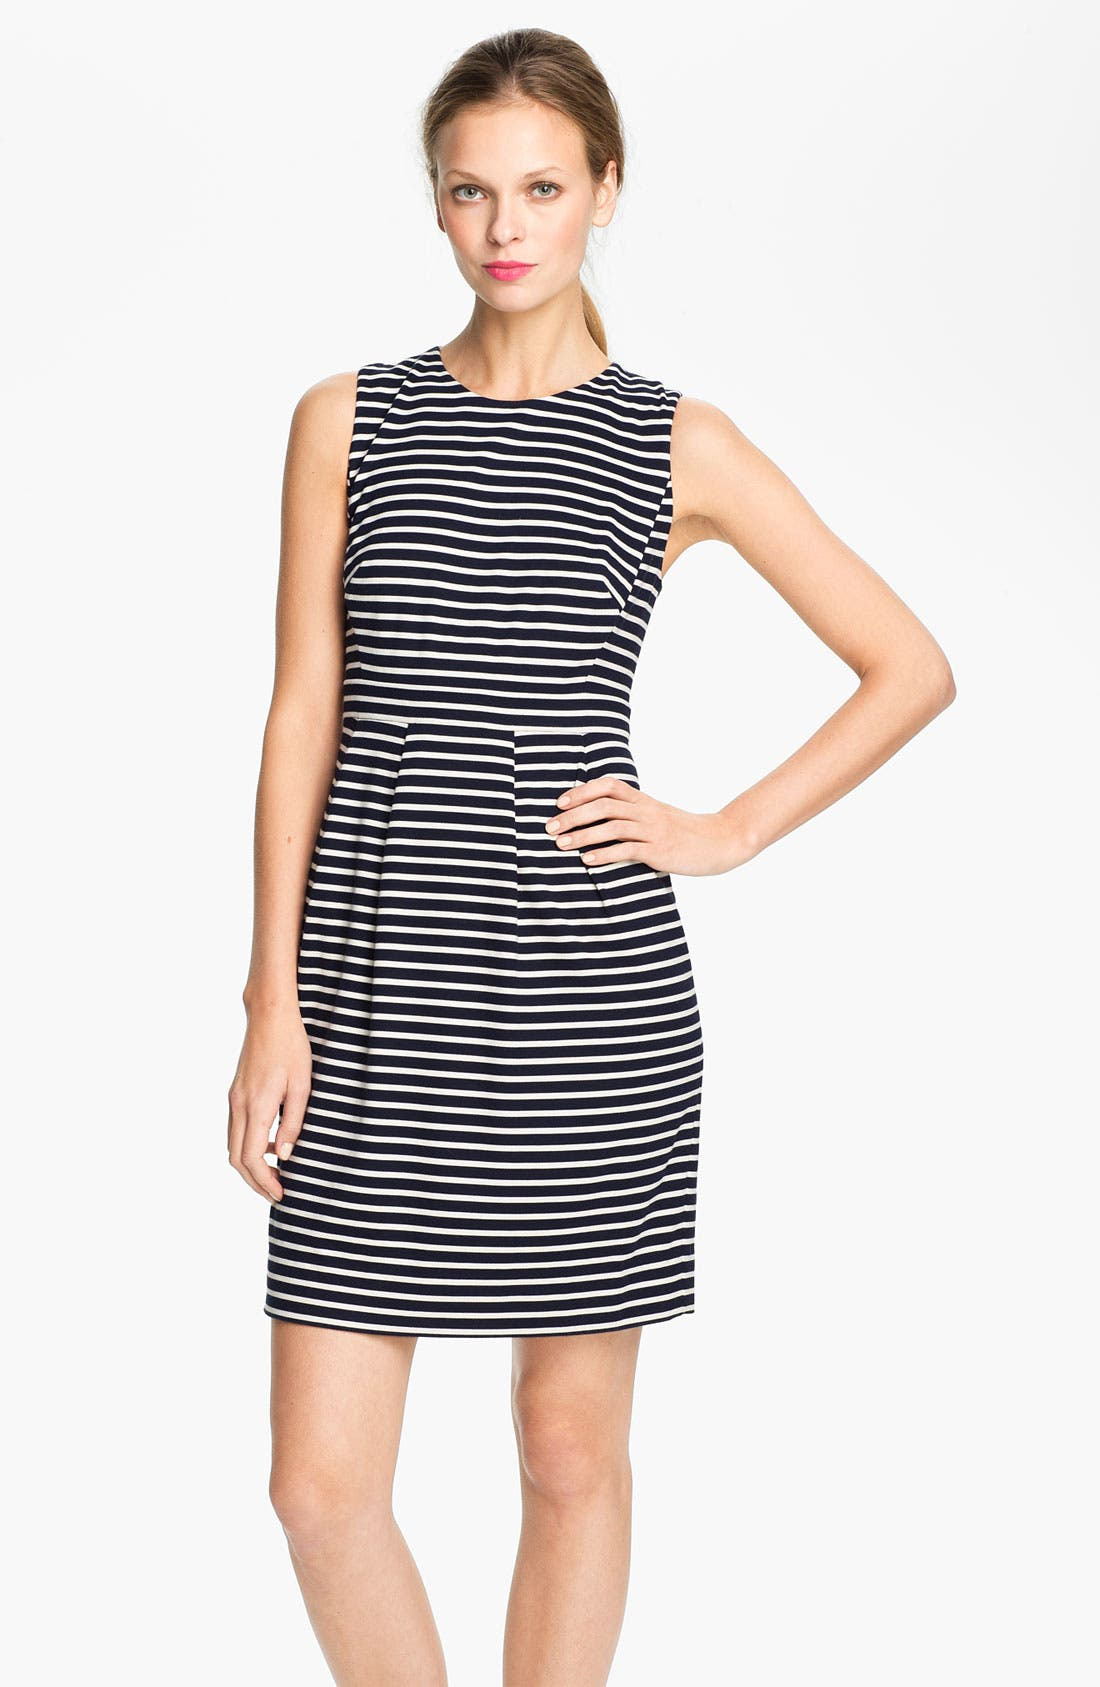 Alternate Image 1 Selected - kate spade new york 'kellie' knit sheath dress